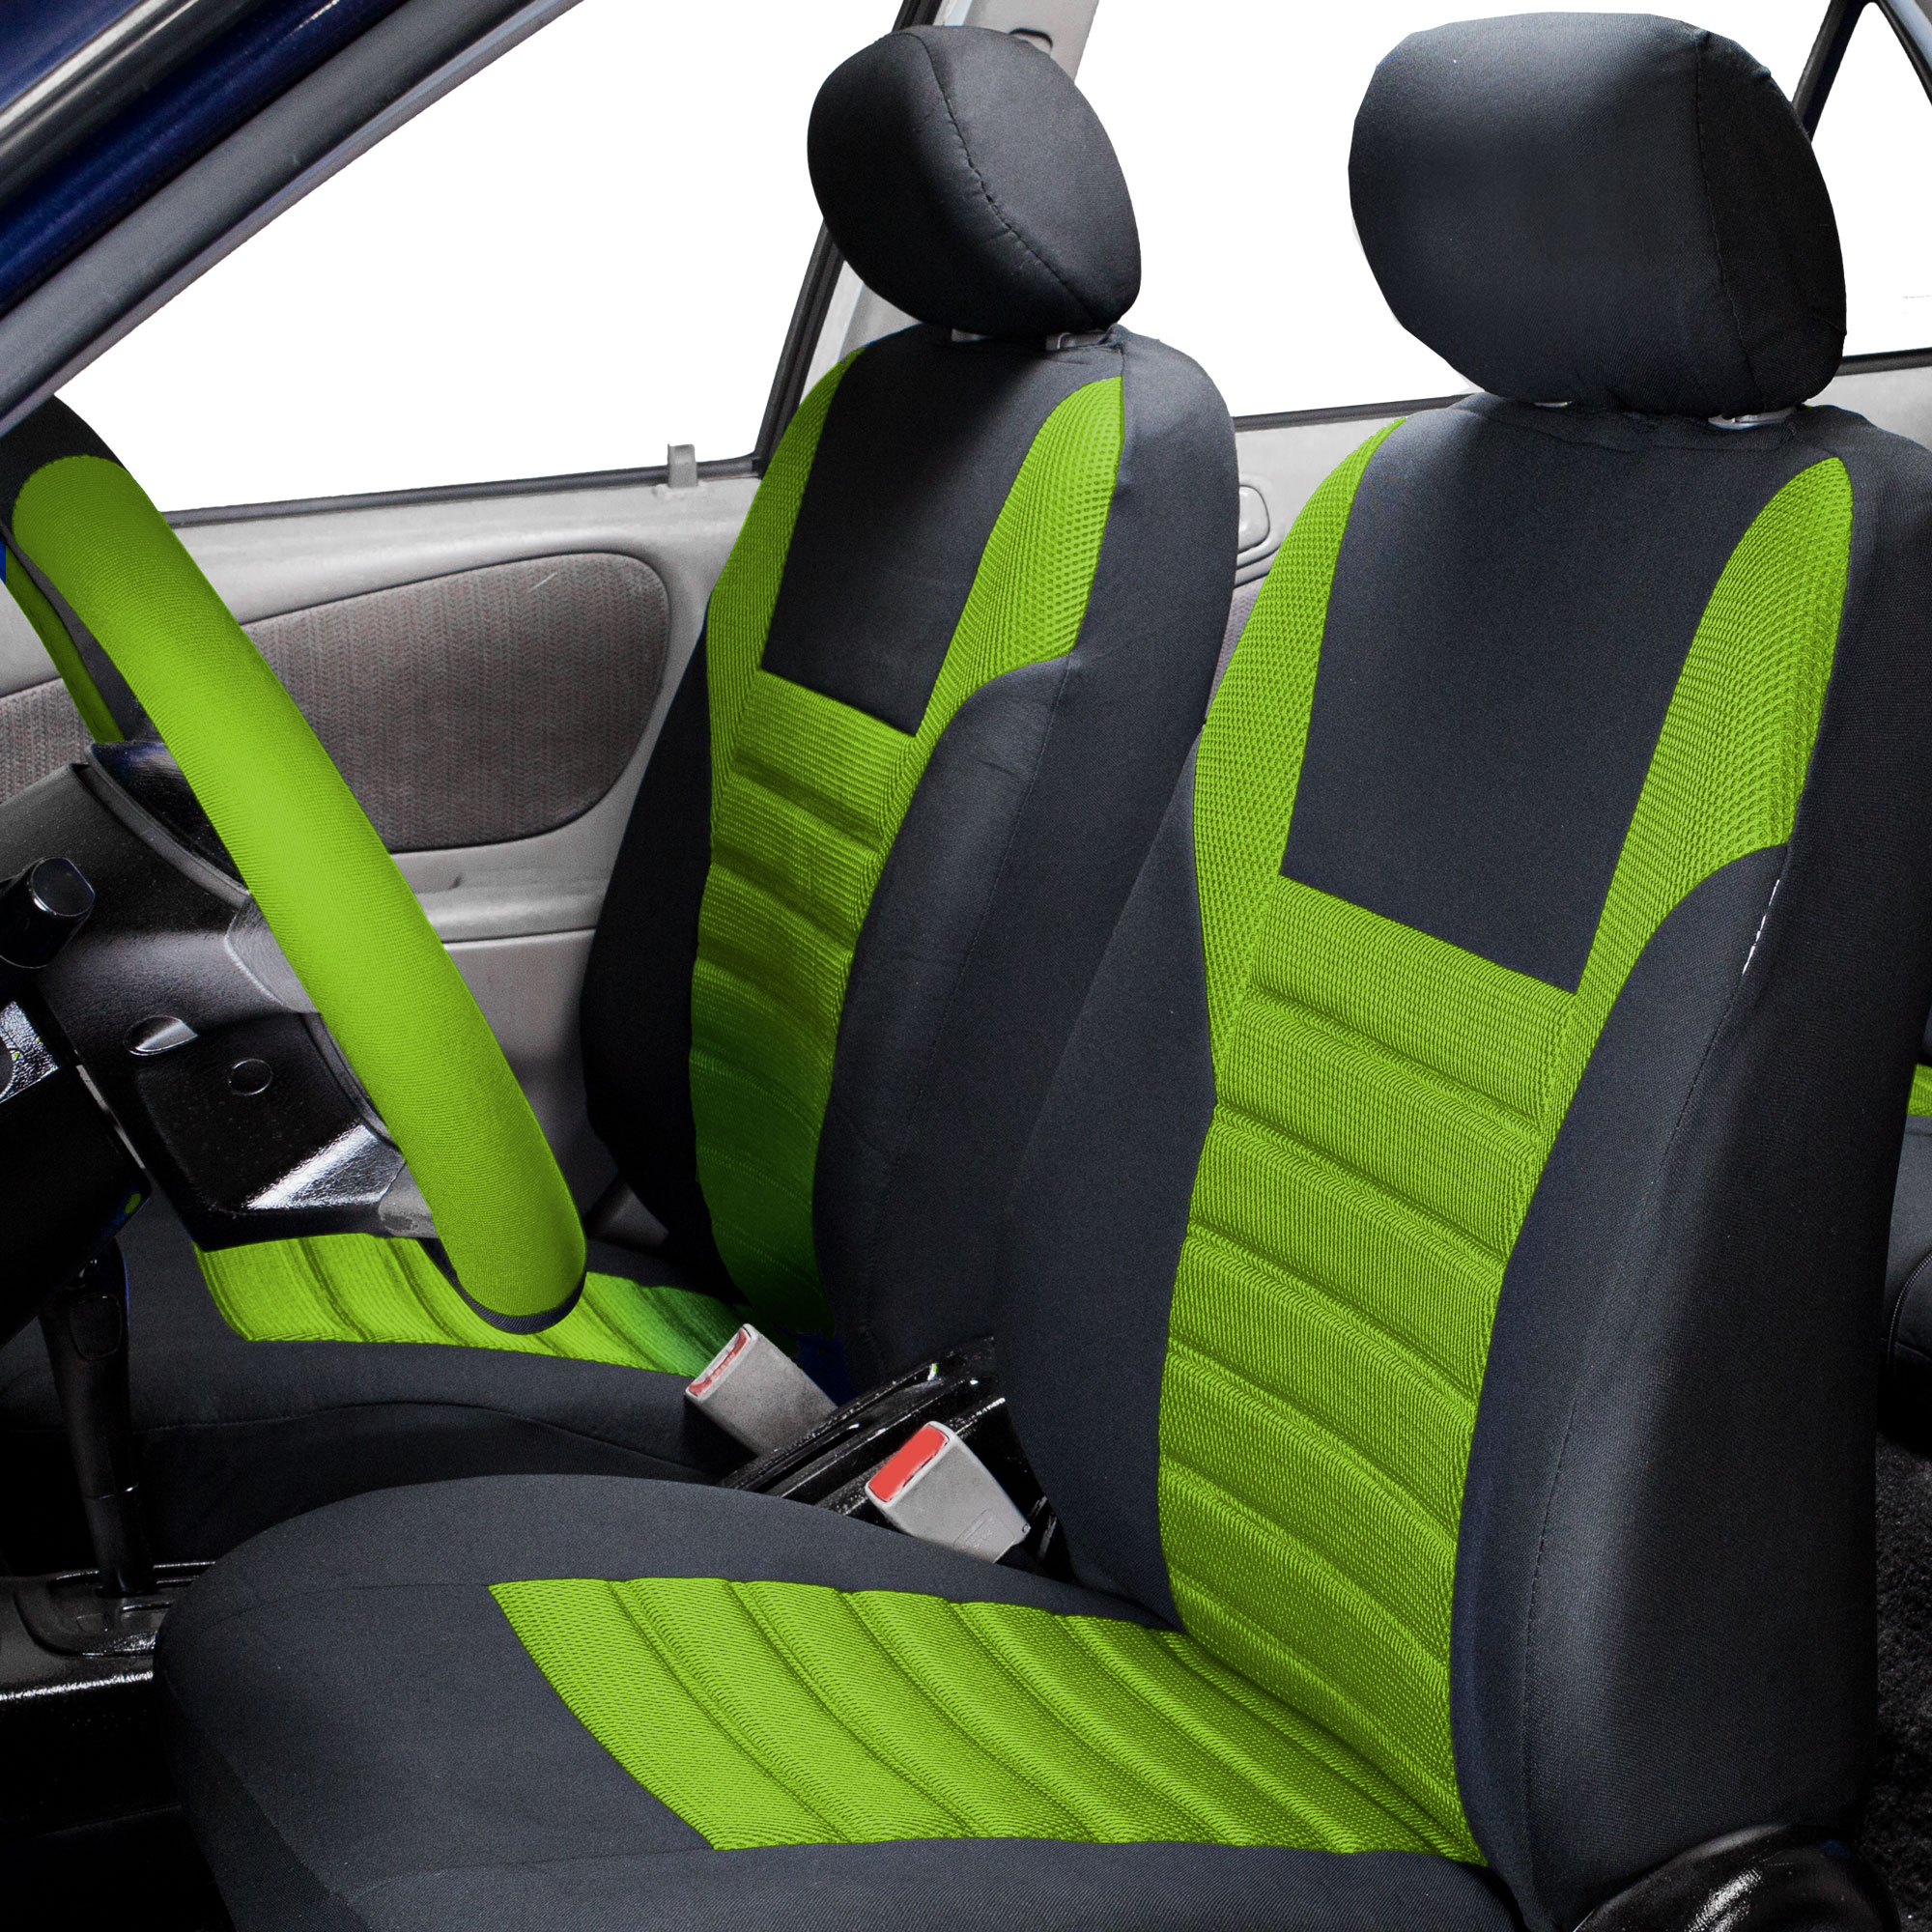 FH Group, Air Mesh Auto Car Seat Covers for Sedan SUV Van Front Buckets, 2 Front Bucket Covers, 11 Colors